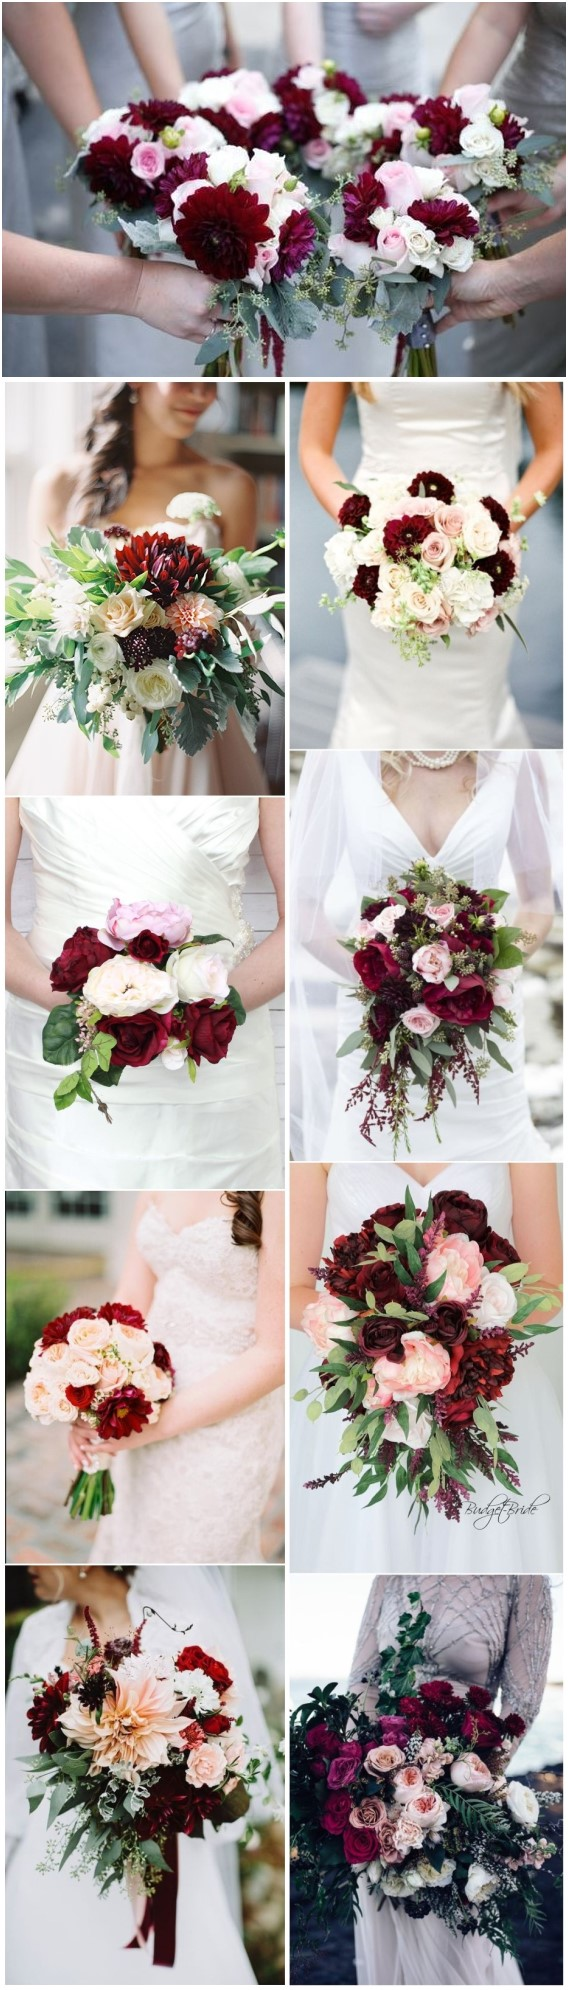 Elegant Burgundy and Blush Wedding Bouquet Ideas